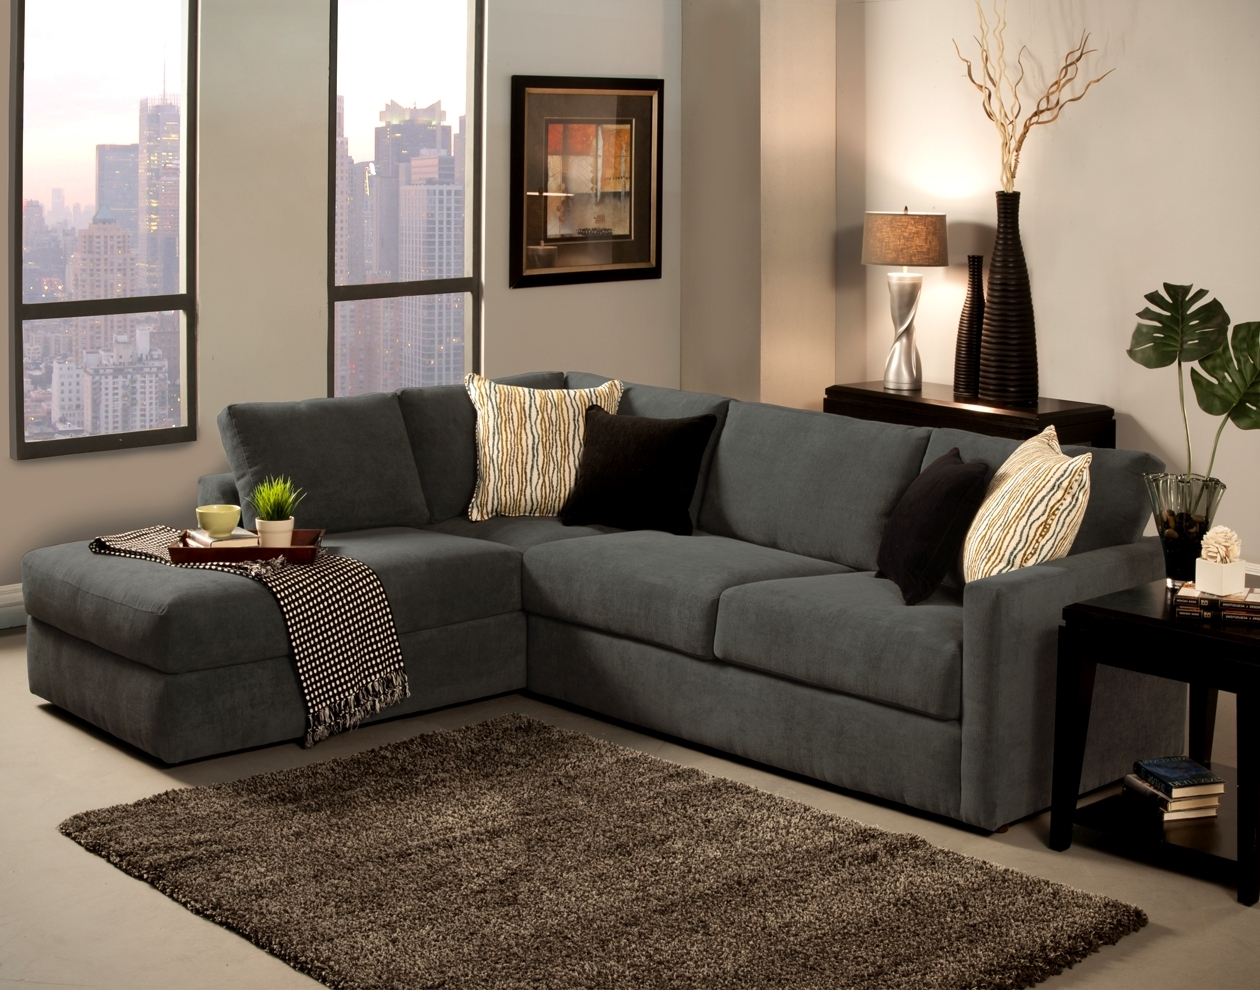 Chaise Lounge Sleeper Sofas Within Recent Leather Sectional Sleeper Sofa Sectional Sofas With Recliners And (View 4 of 15)